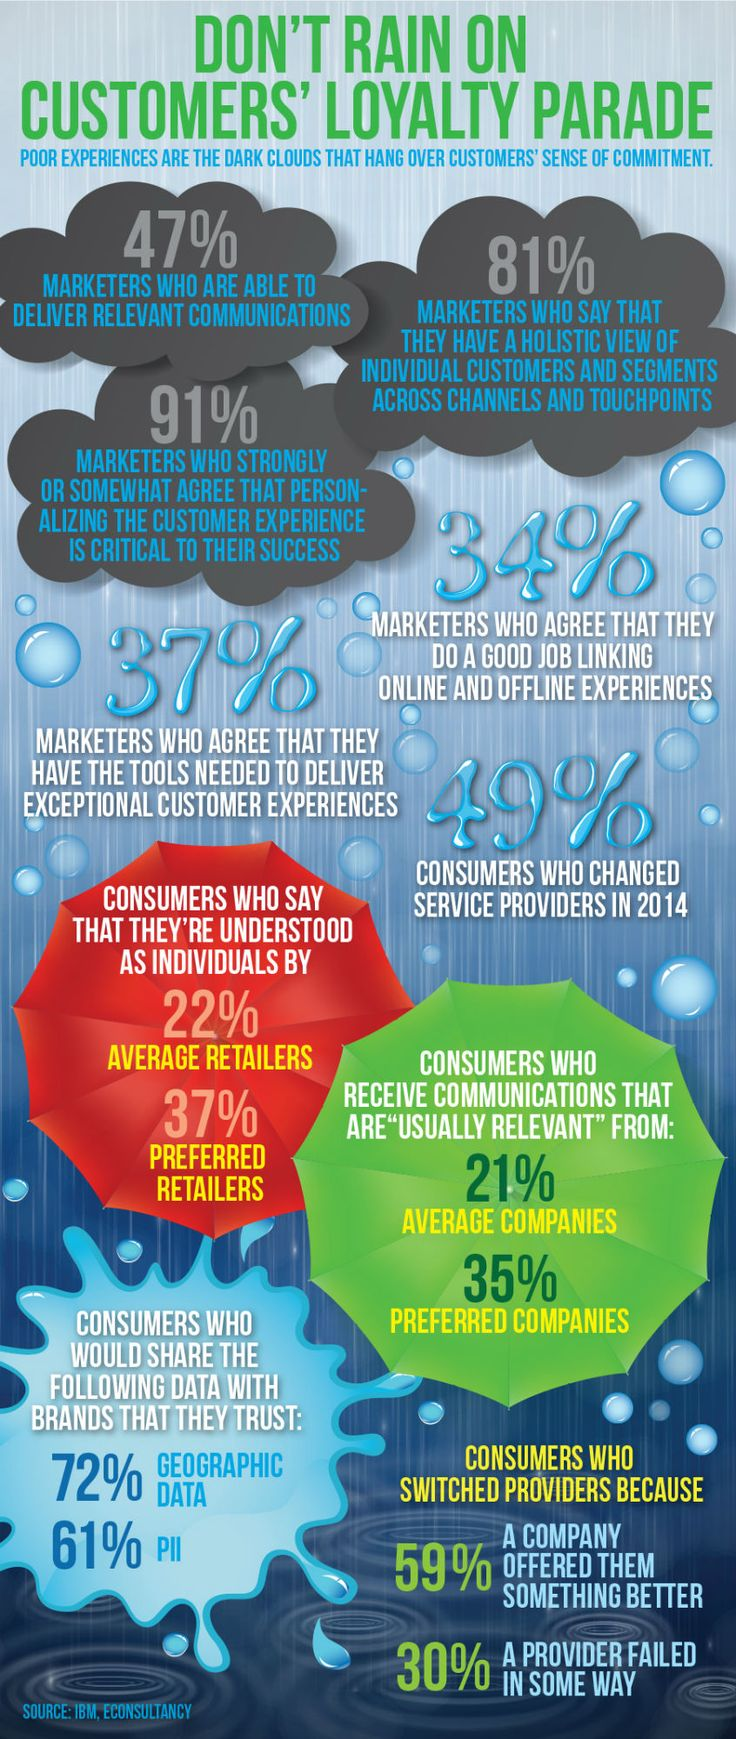 Don't Rain on Customers' Loyalty Parade [Infographic] - Direct Marketing News